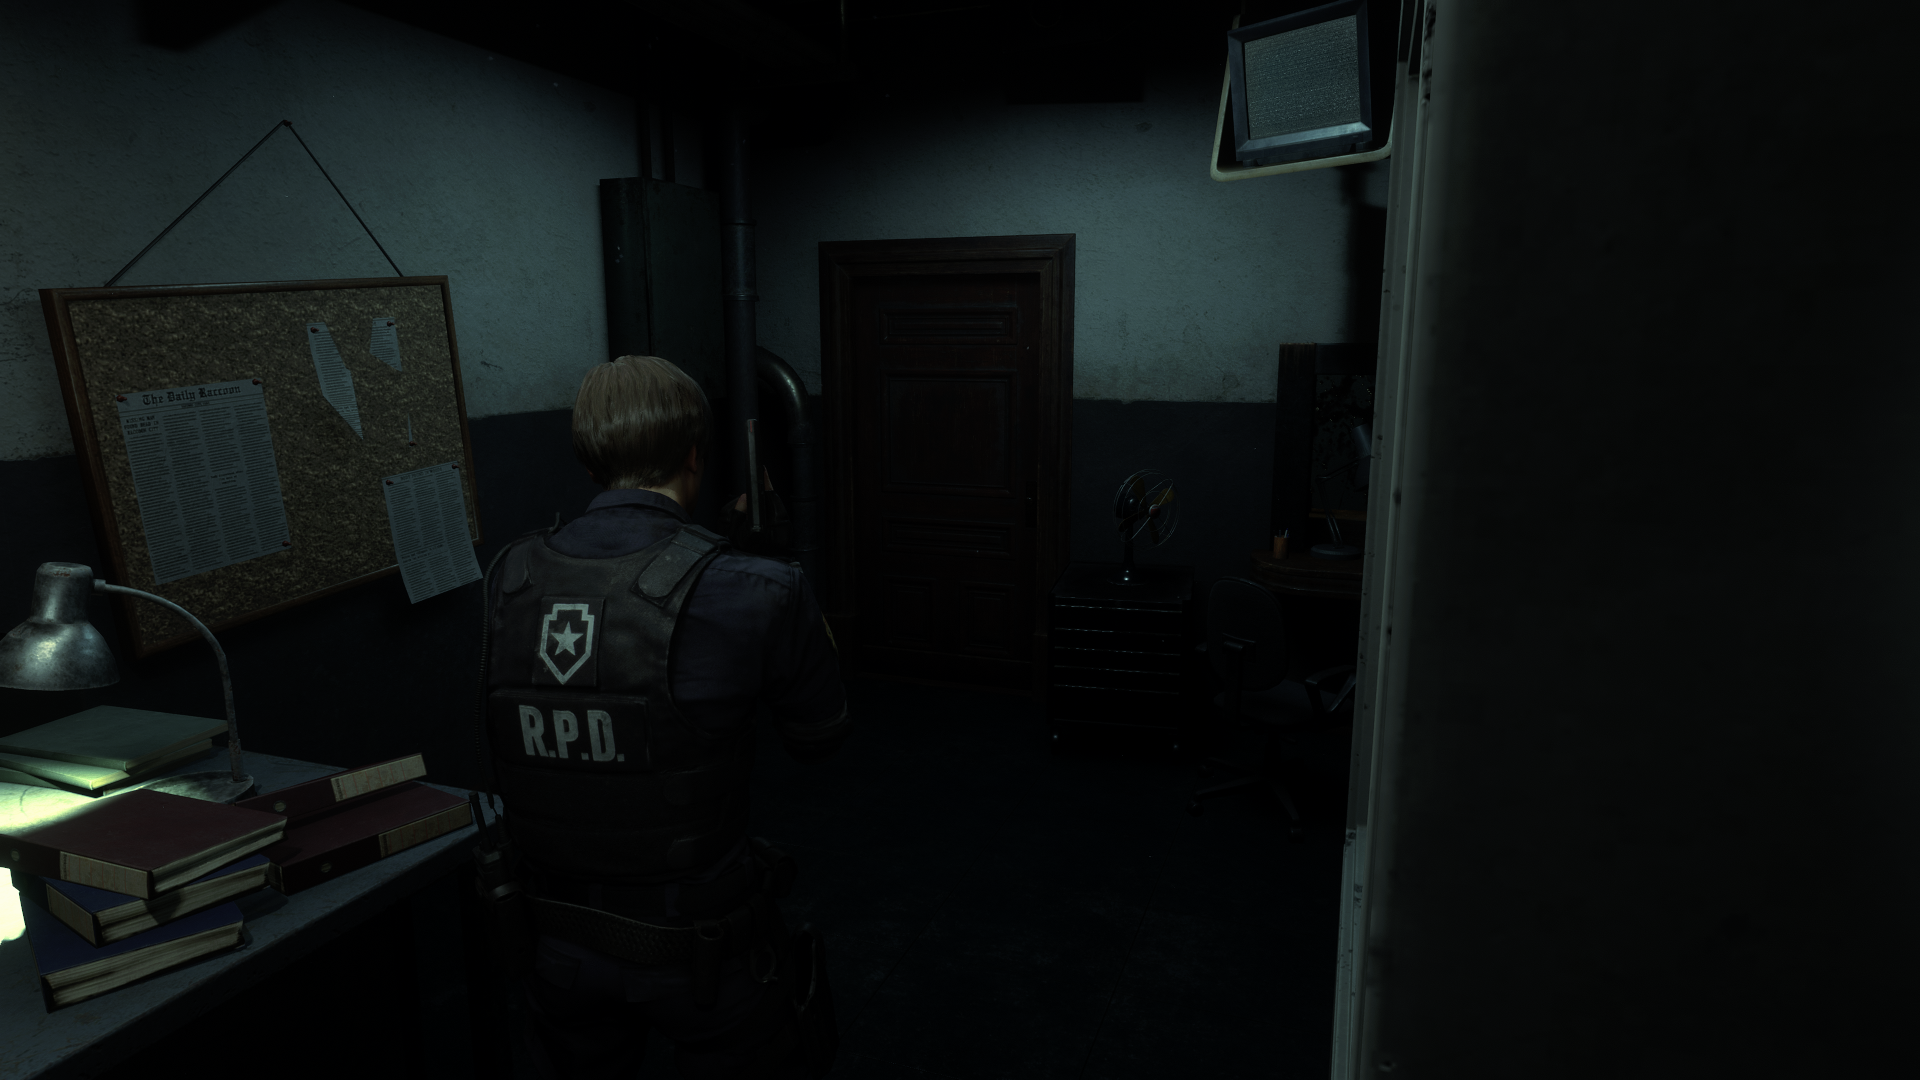 Resident Evil 2 (2019) PC performance thread | ResetEra